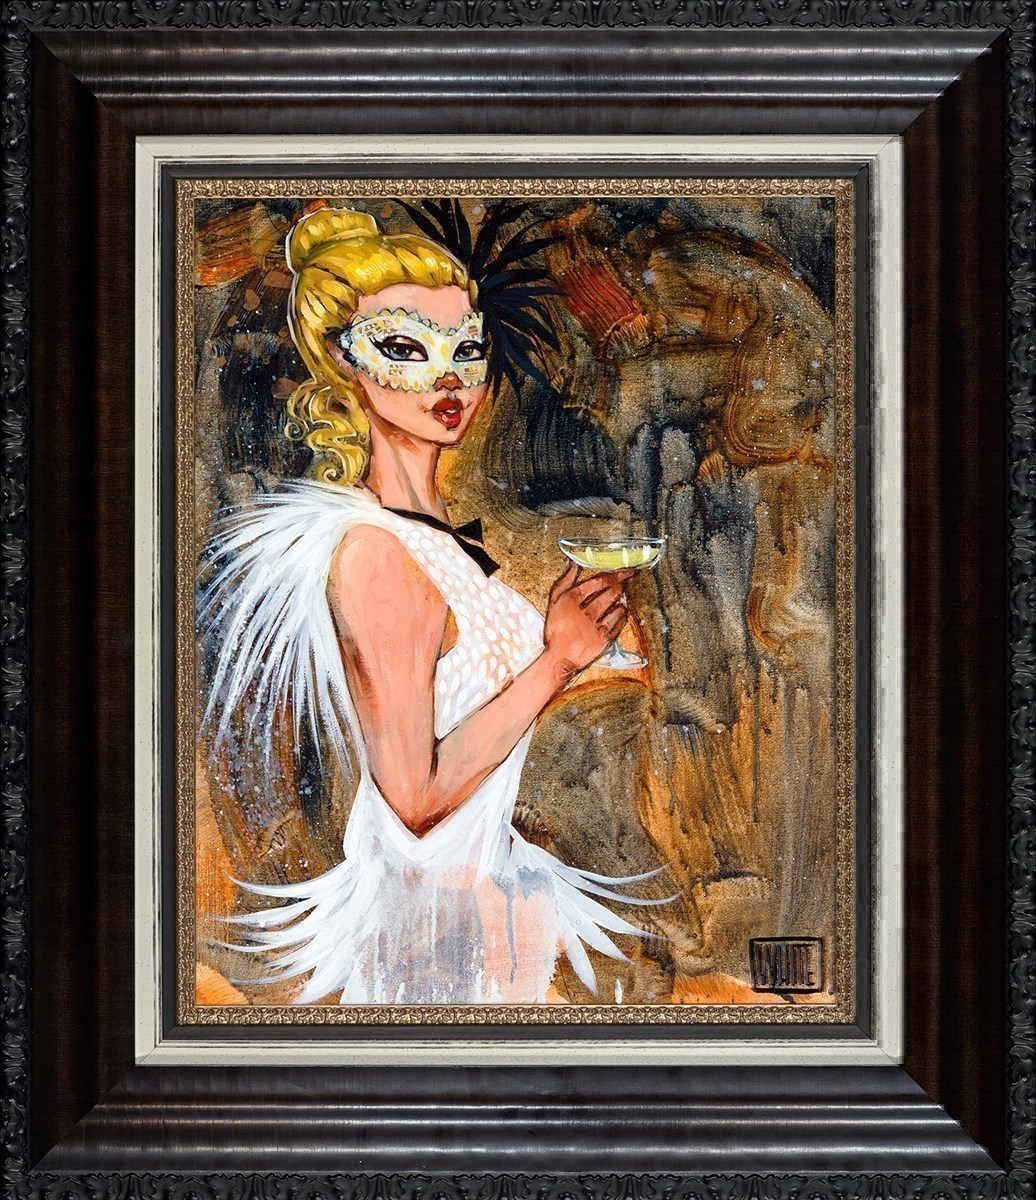 Black Tie Optional by Todd White - Hand Finished Limited Edition on Canvas sized 16x20 inches. Available from Whitewall Galleries